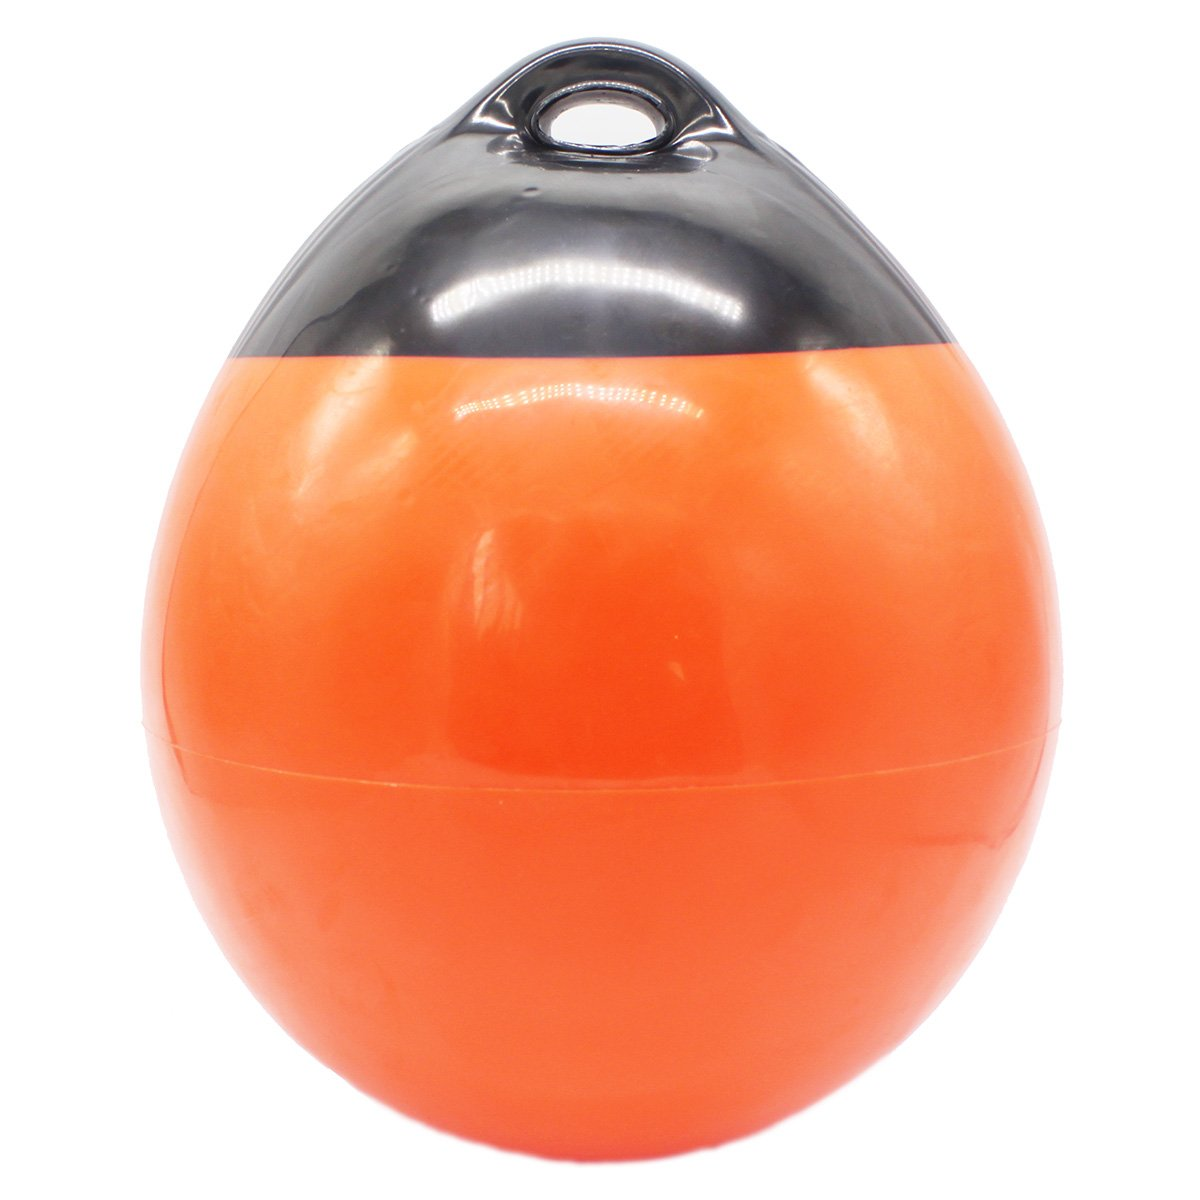 X-Haibei 1 Boat Fender Ball Round Anchor Buoy | Dock Bumper Ball Inflatable Vinyl A-Series Shield Protection Marine Mooring Buoy Orange, A29(D11.8H13.8 INCH)